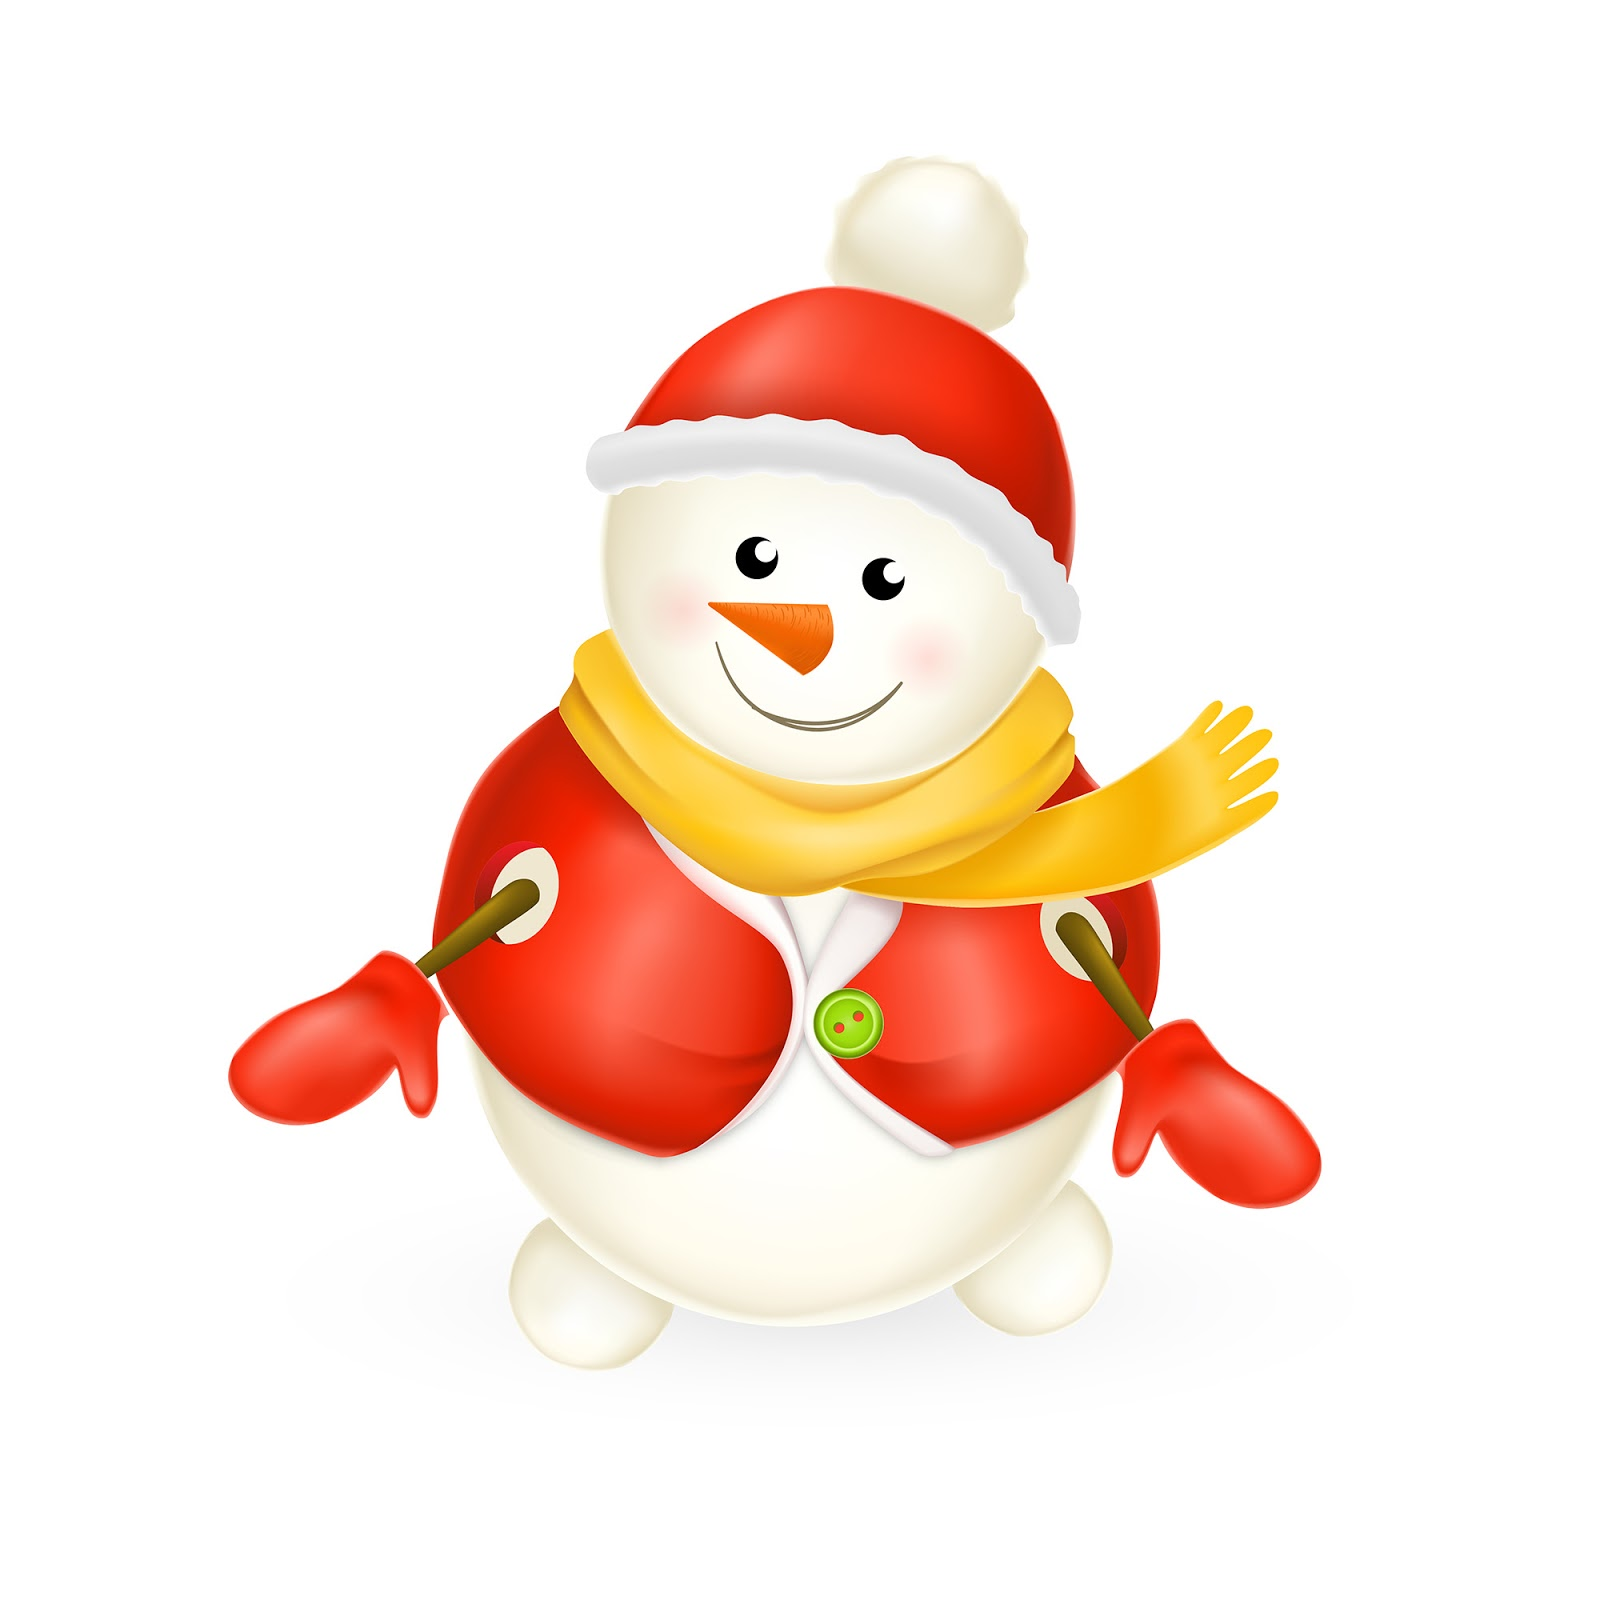 Smiling Snowman Free Download Vector CDR, AI, EPS and PNG Formats